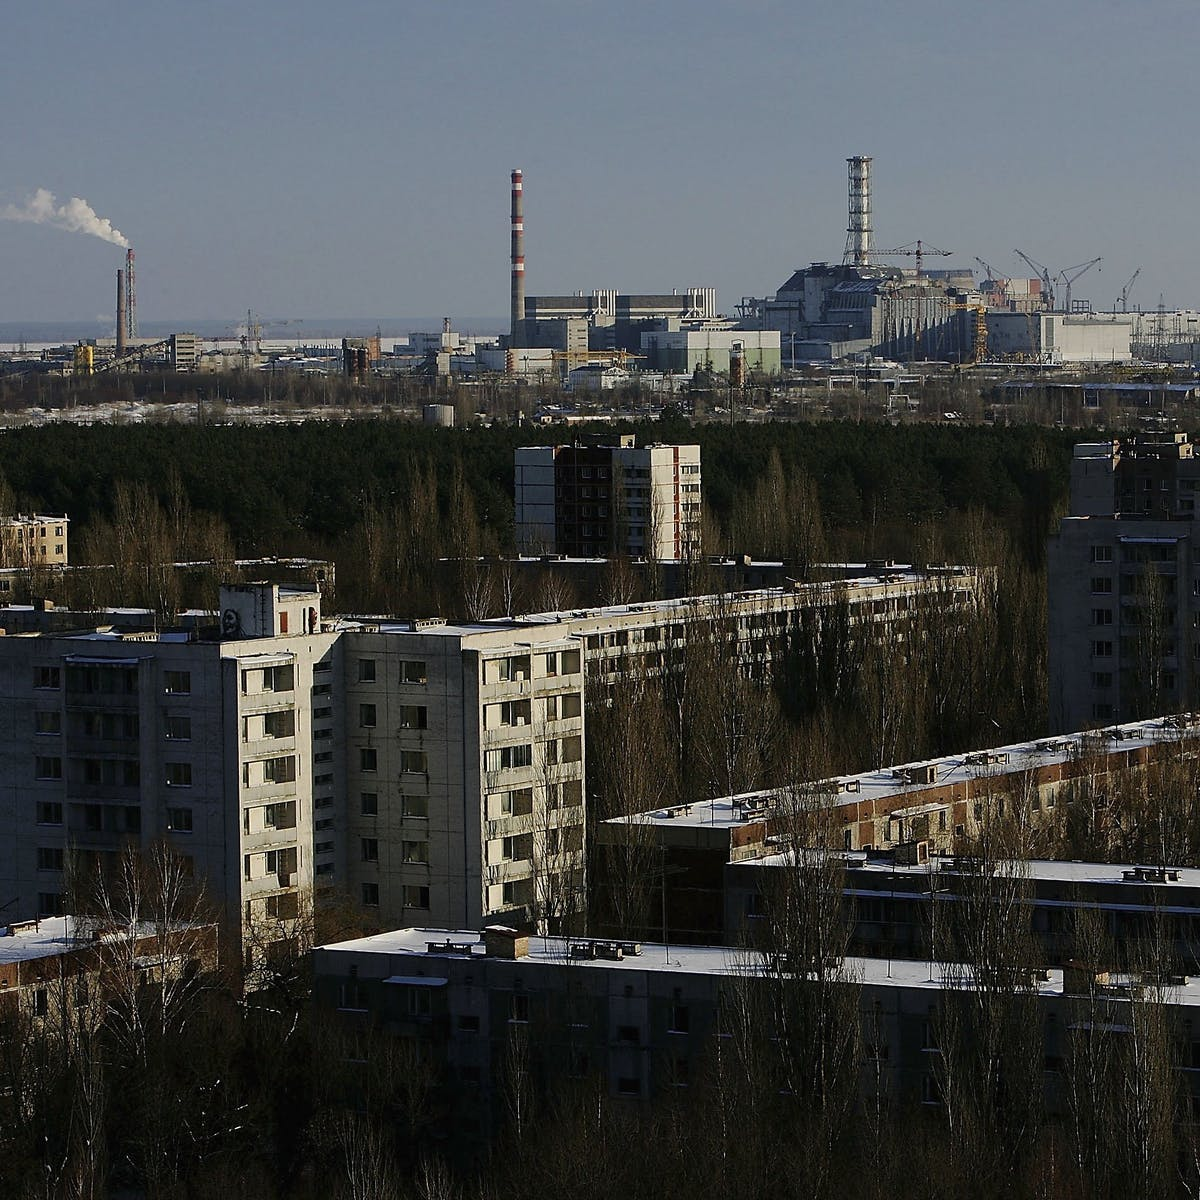 Is Chernobyl Safe? It Depends How You Define